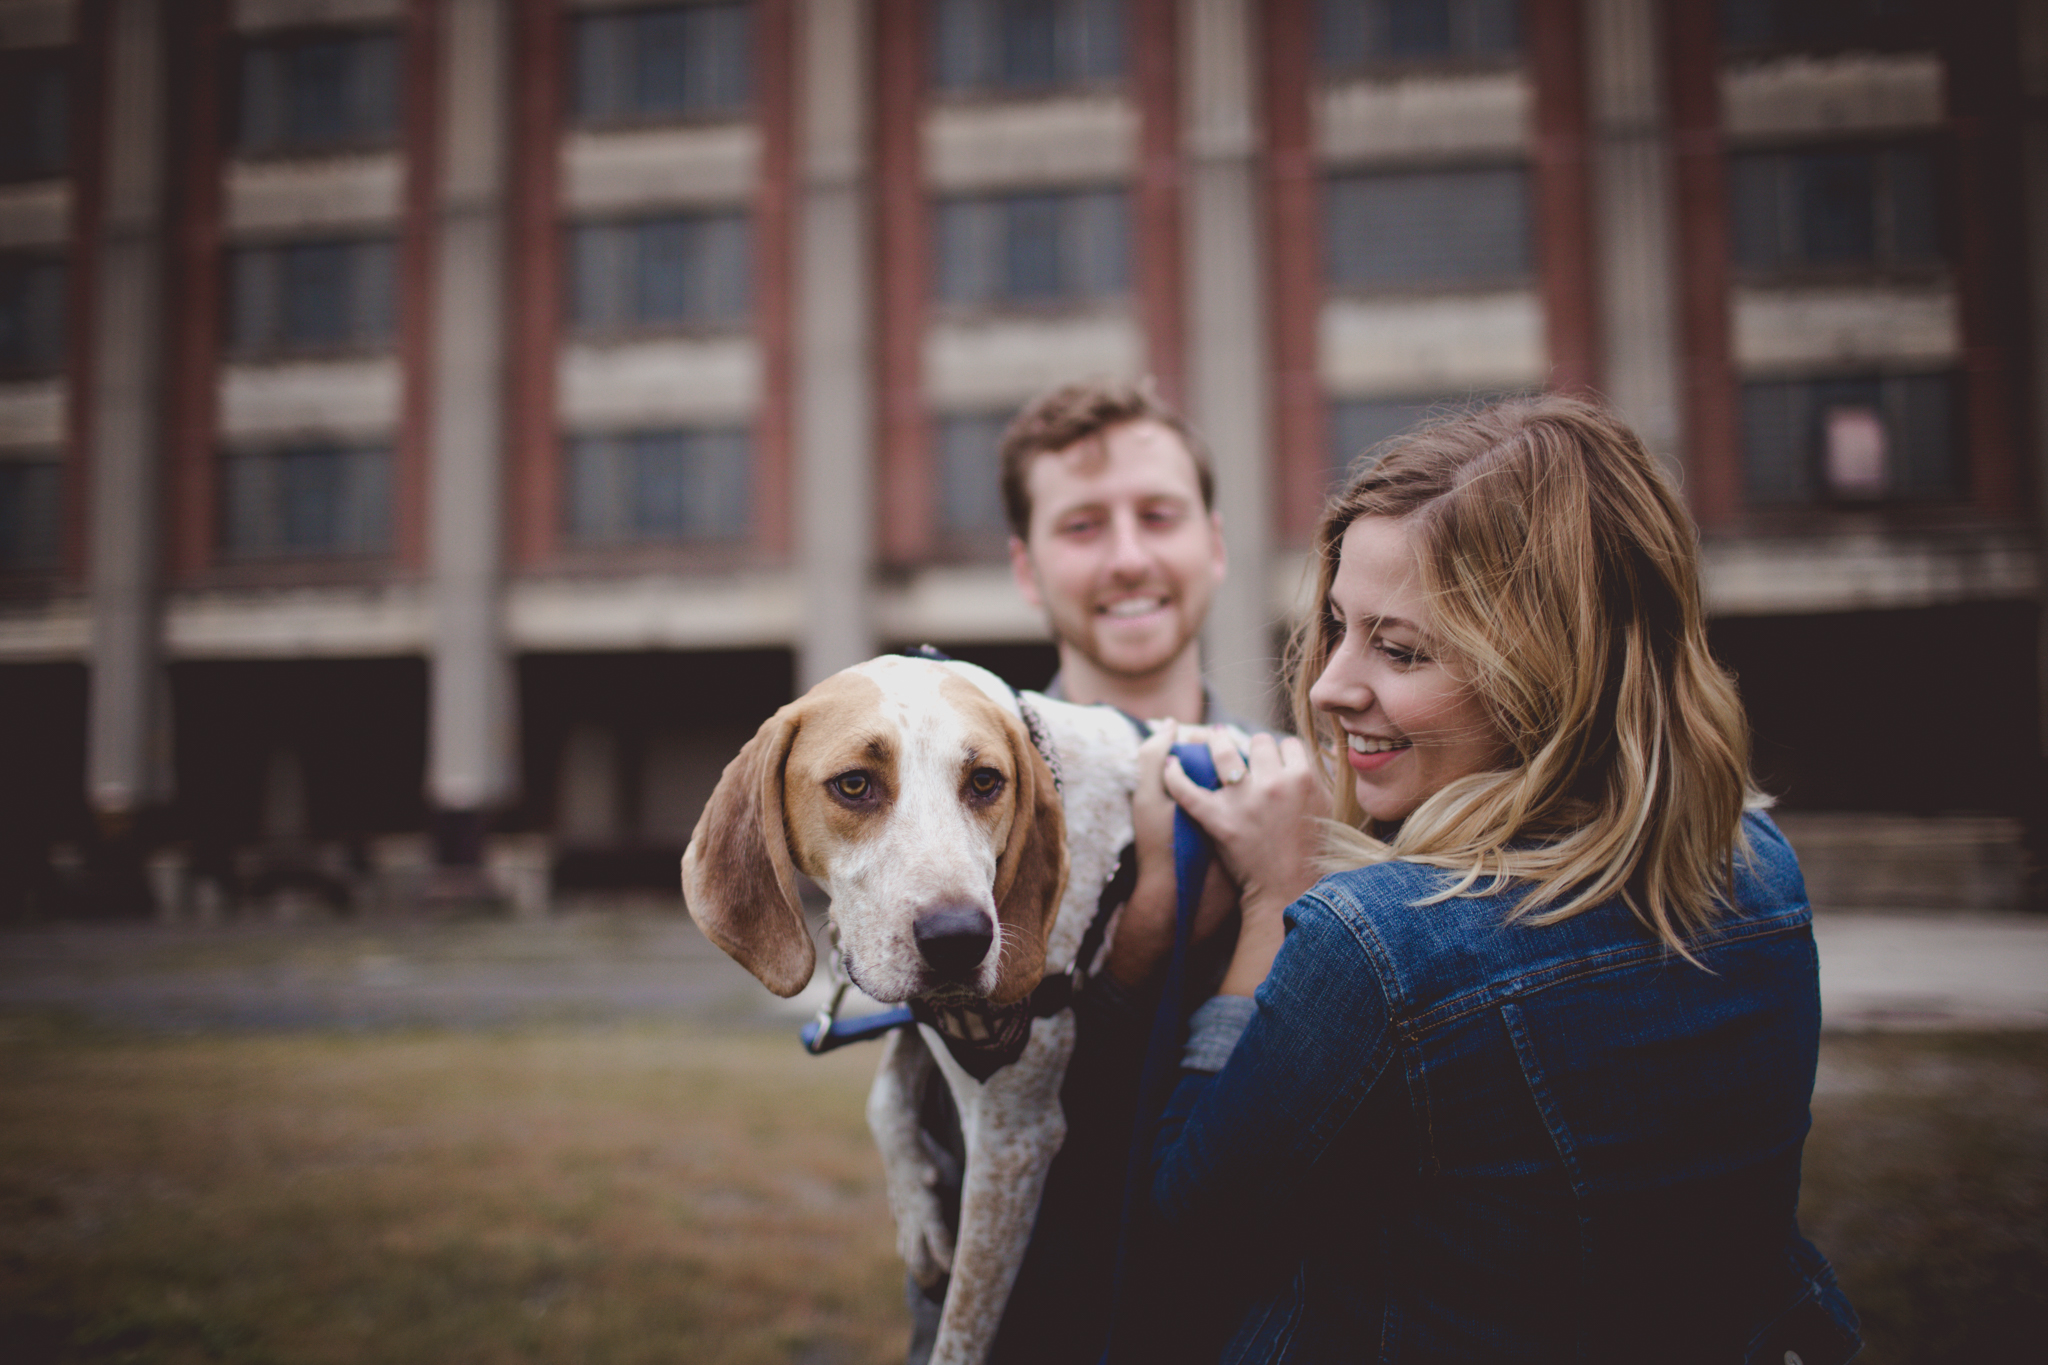 Cambria_Philly_Engagement_Photography-7894.jpg